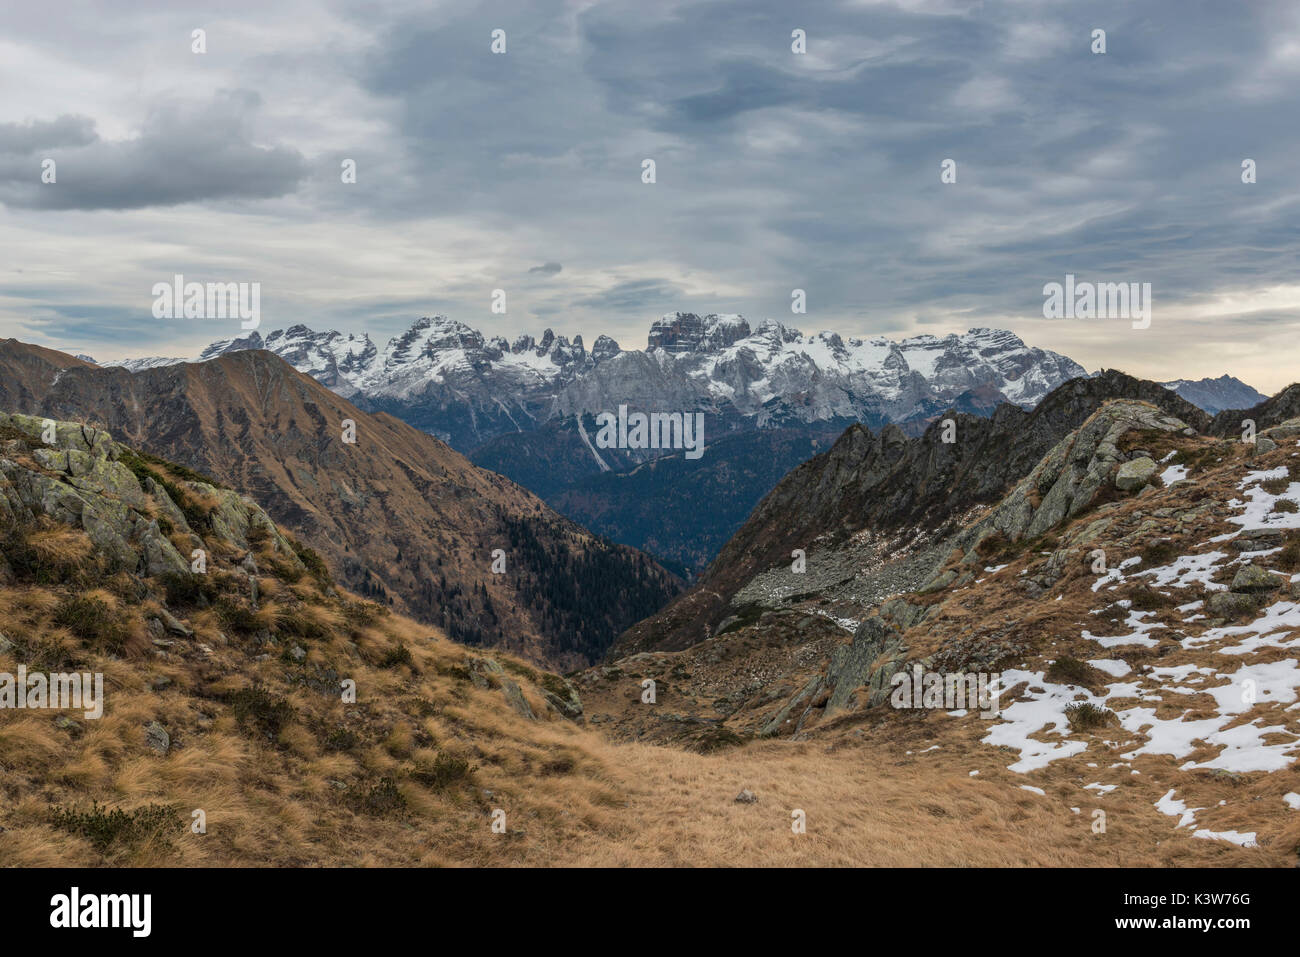 Italy, Trentino Alto Adige, Adamello Brenta Park, Brenta group view from Nambrone vally. - Stock Image